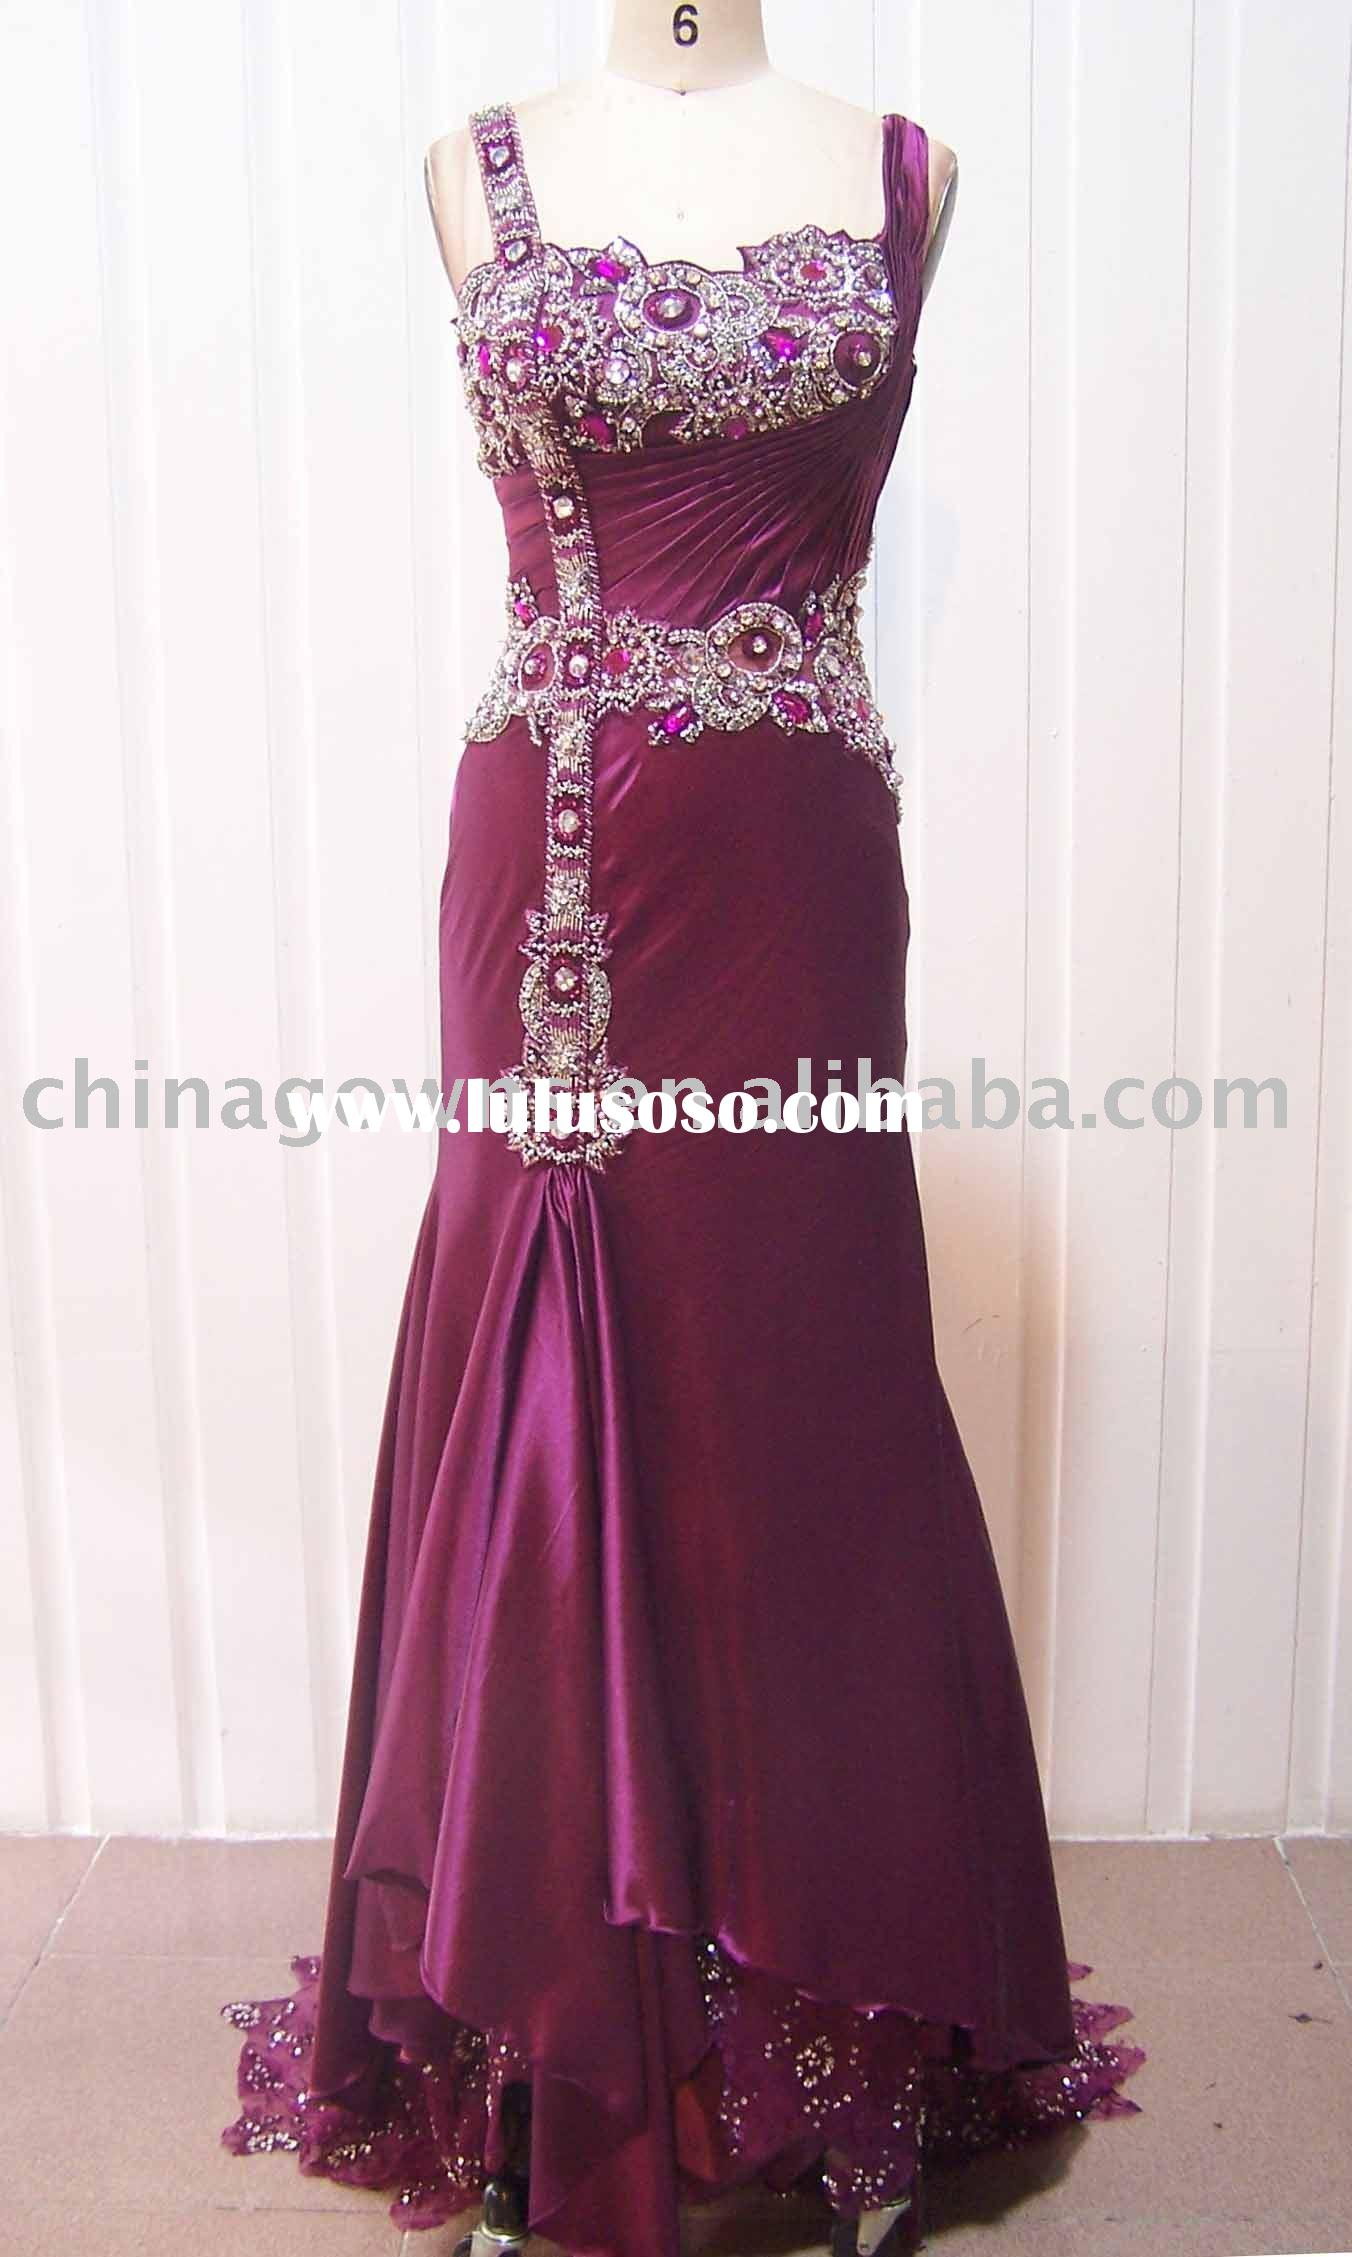 Red long evening dress for party